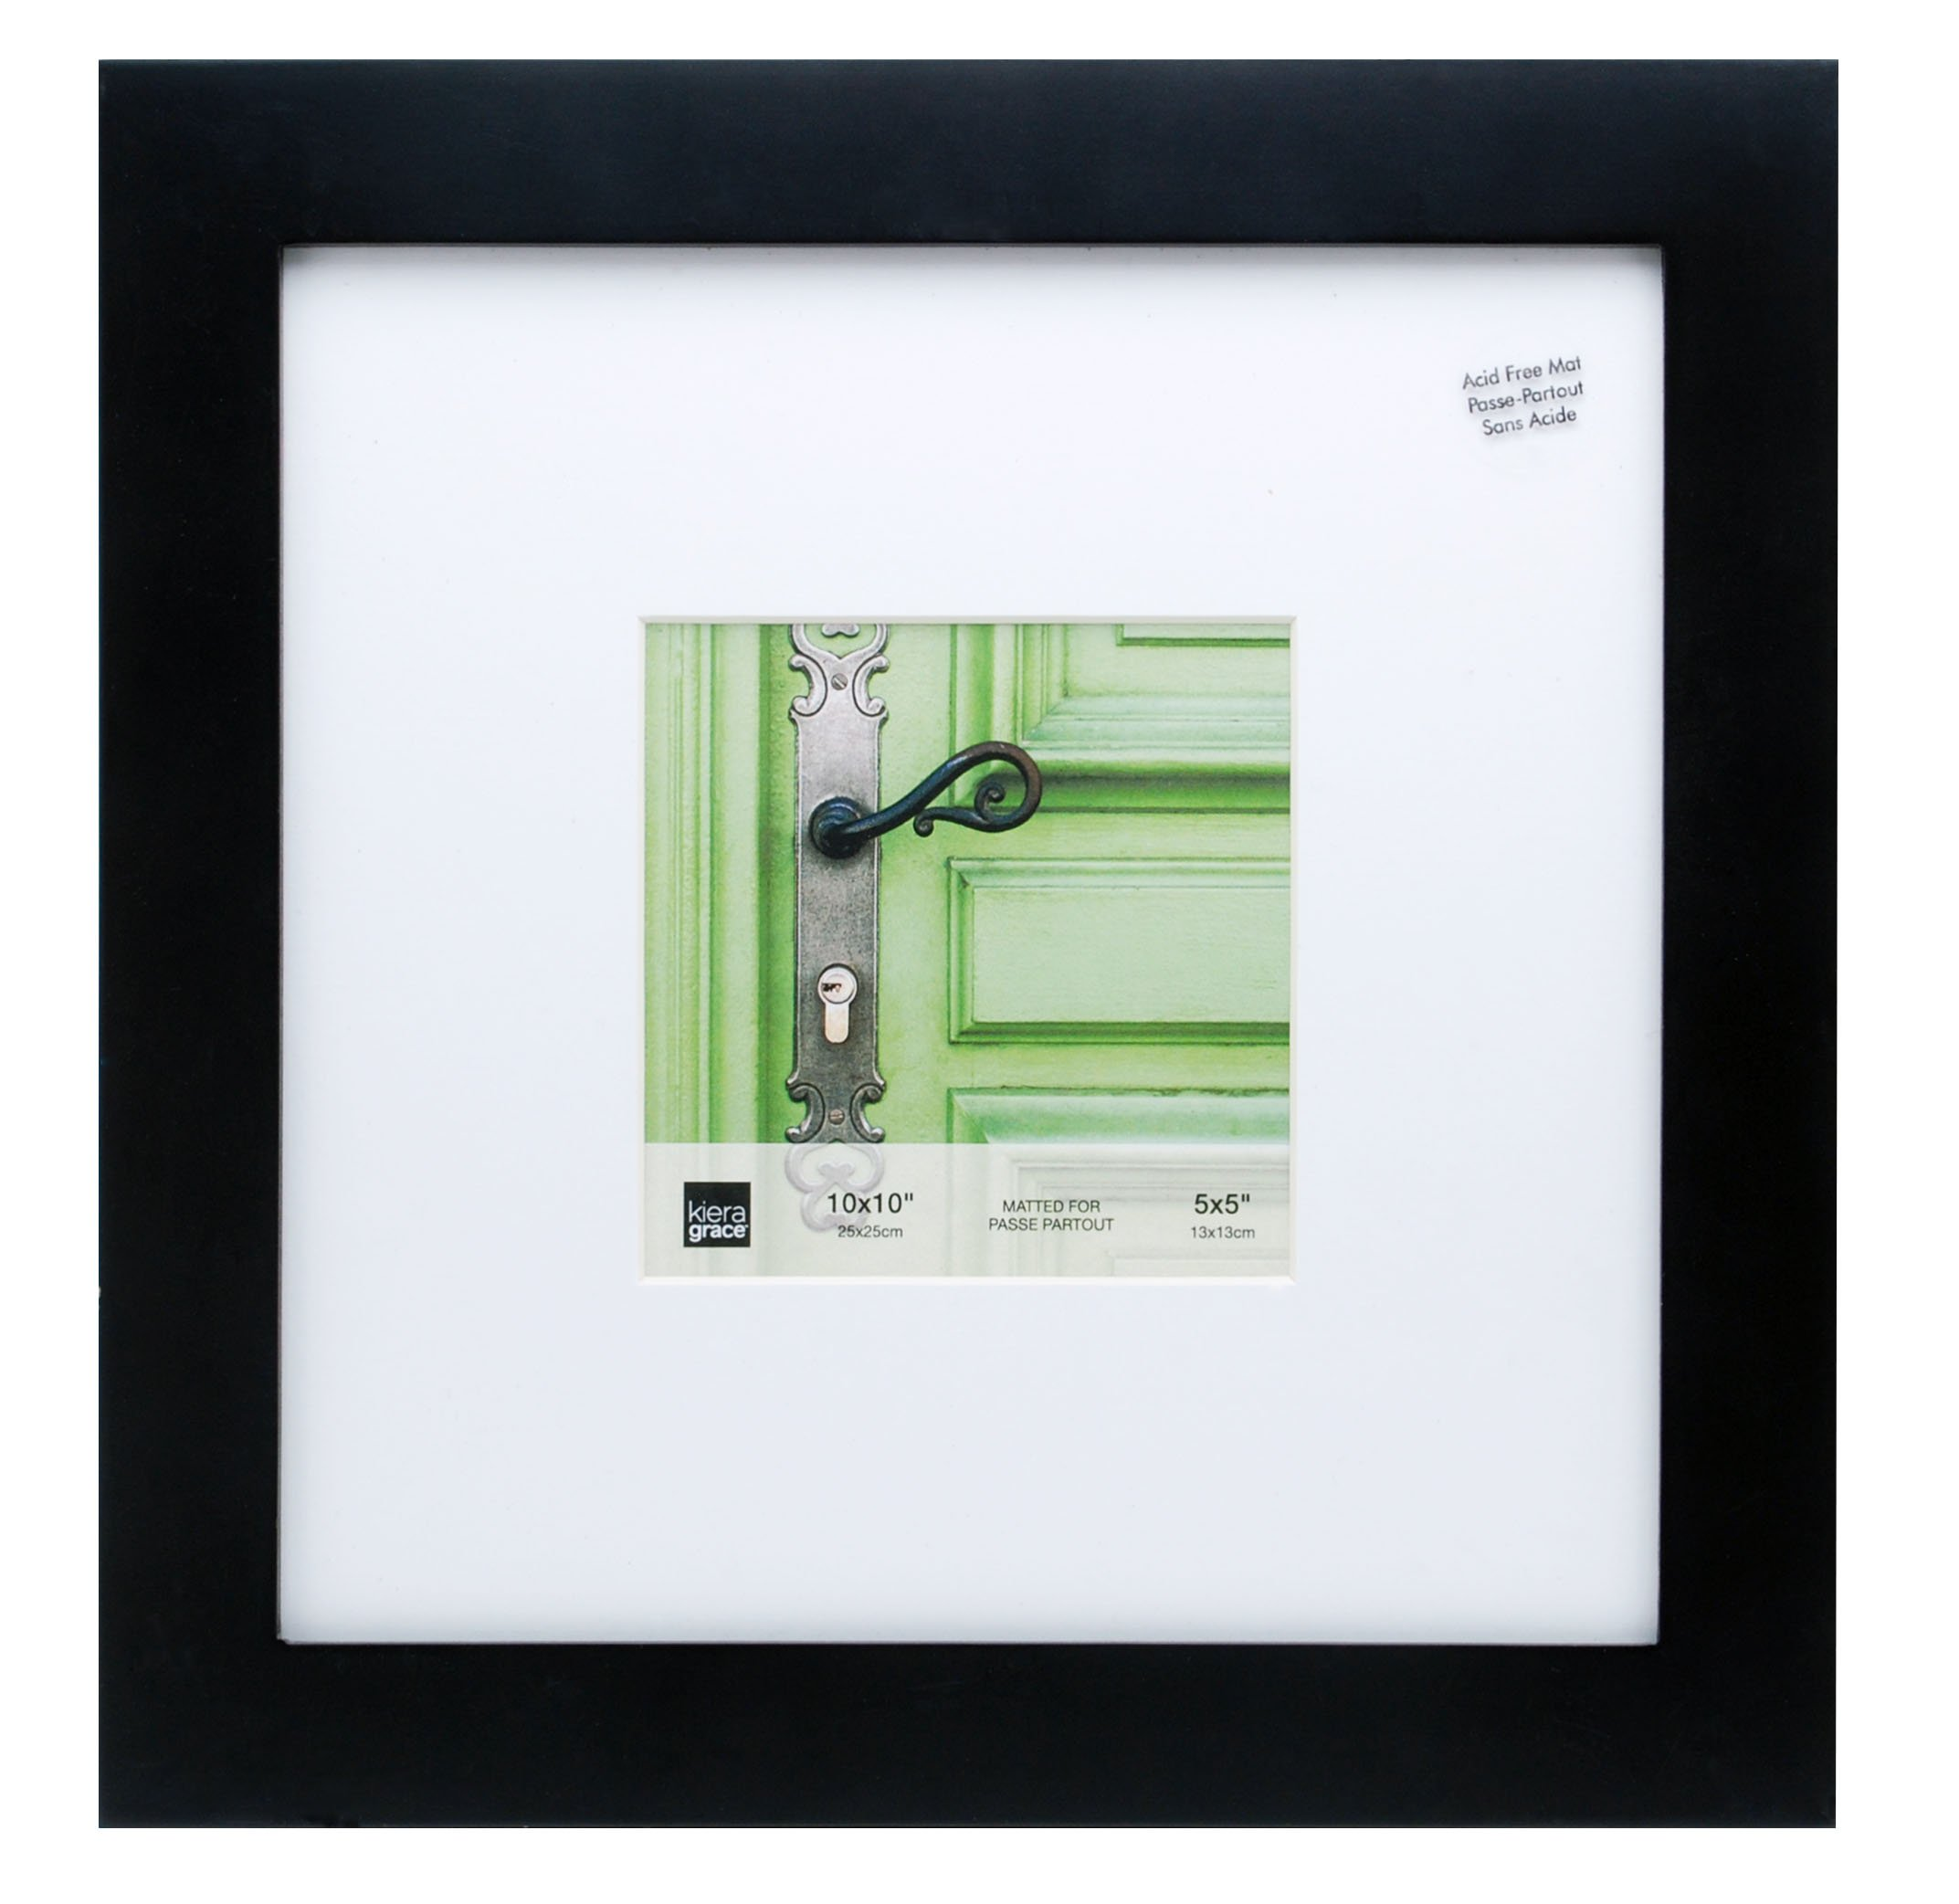 Kiera Grace PH43456-2 Langford Wood Picture Frame, 10 x 10, Black